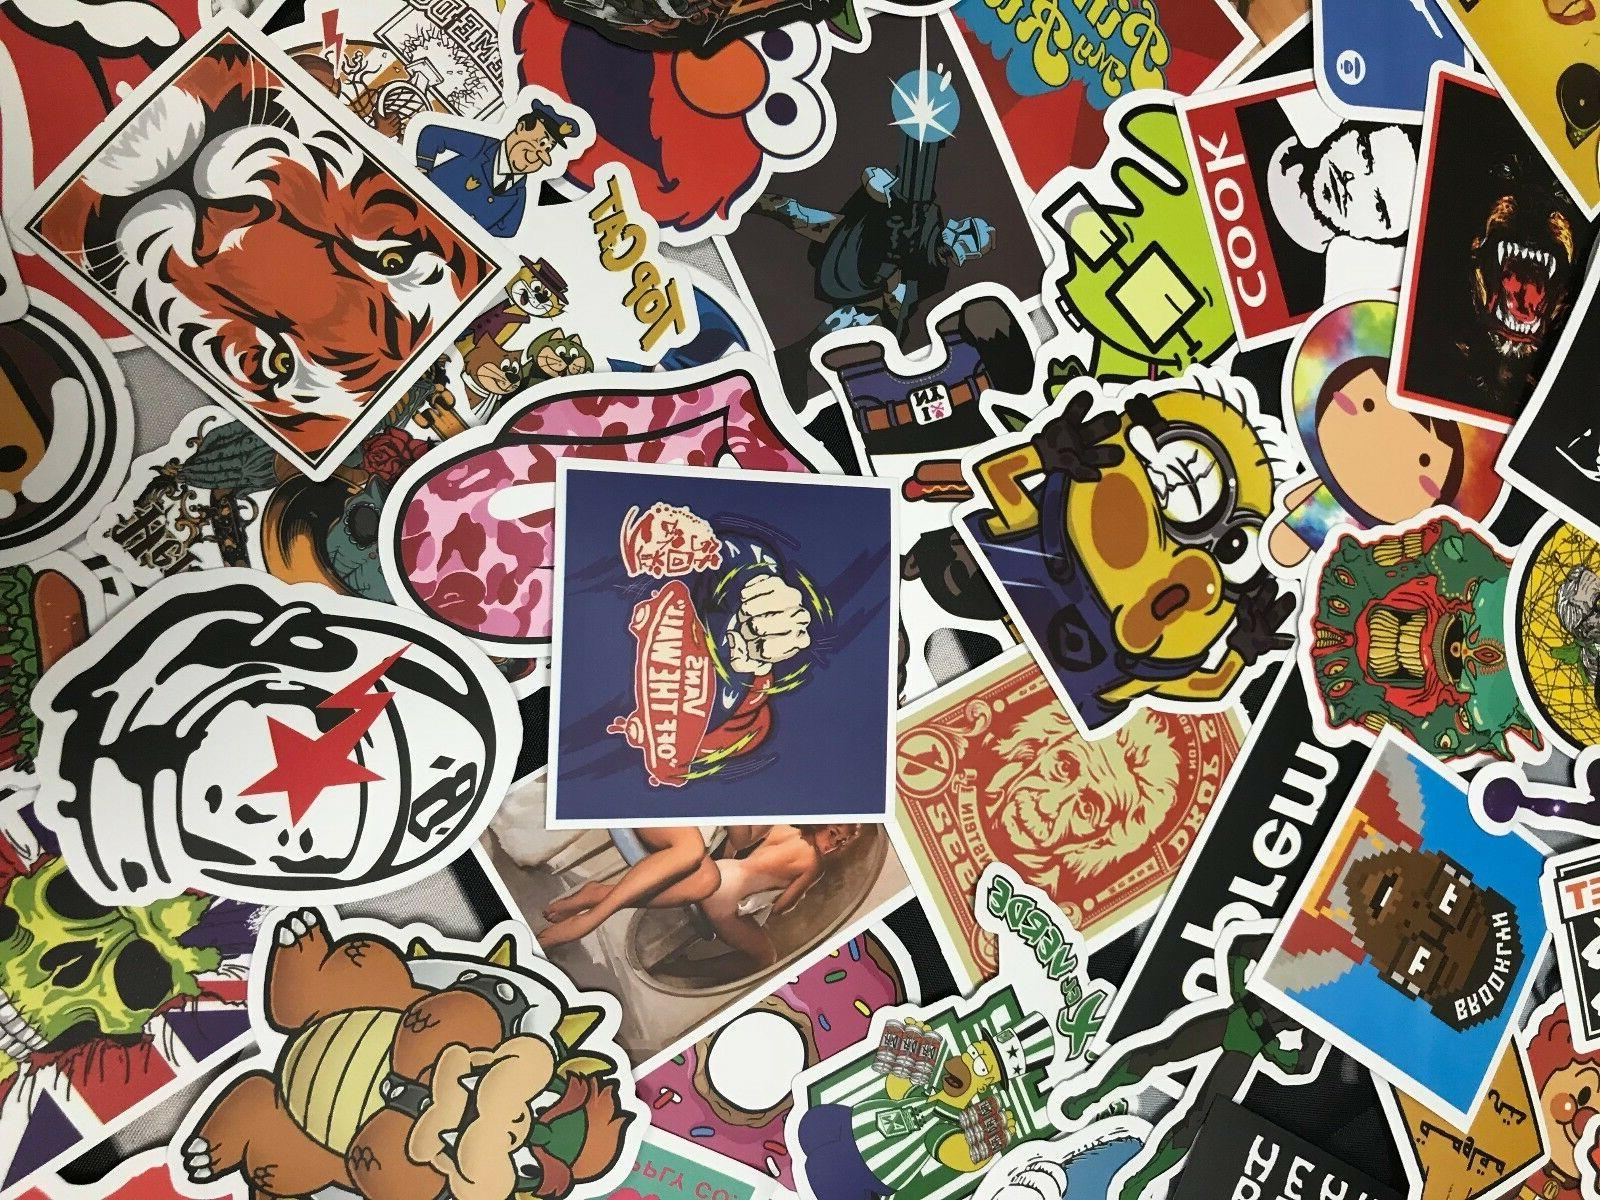 Lot 100 Laptop Stickers bomb Luggage Decals Dope